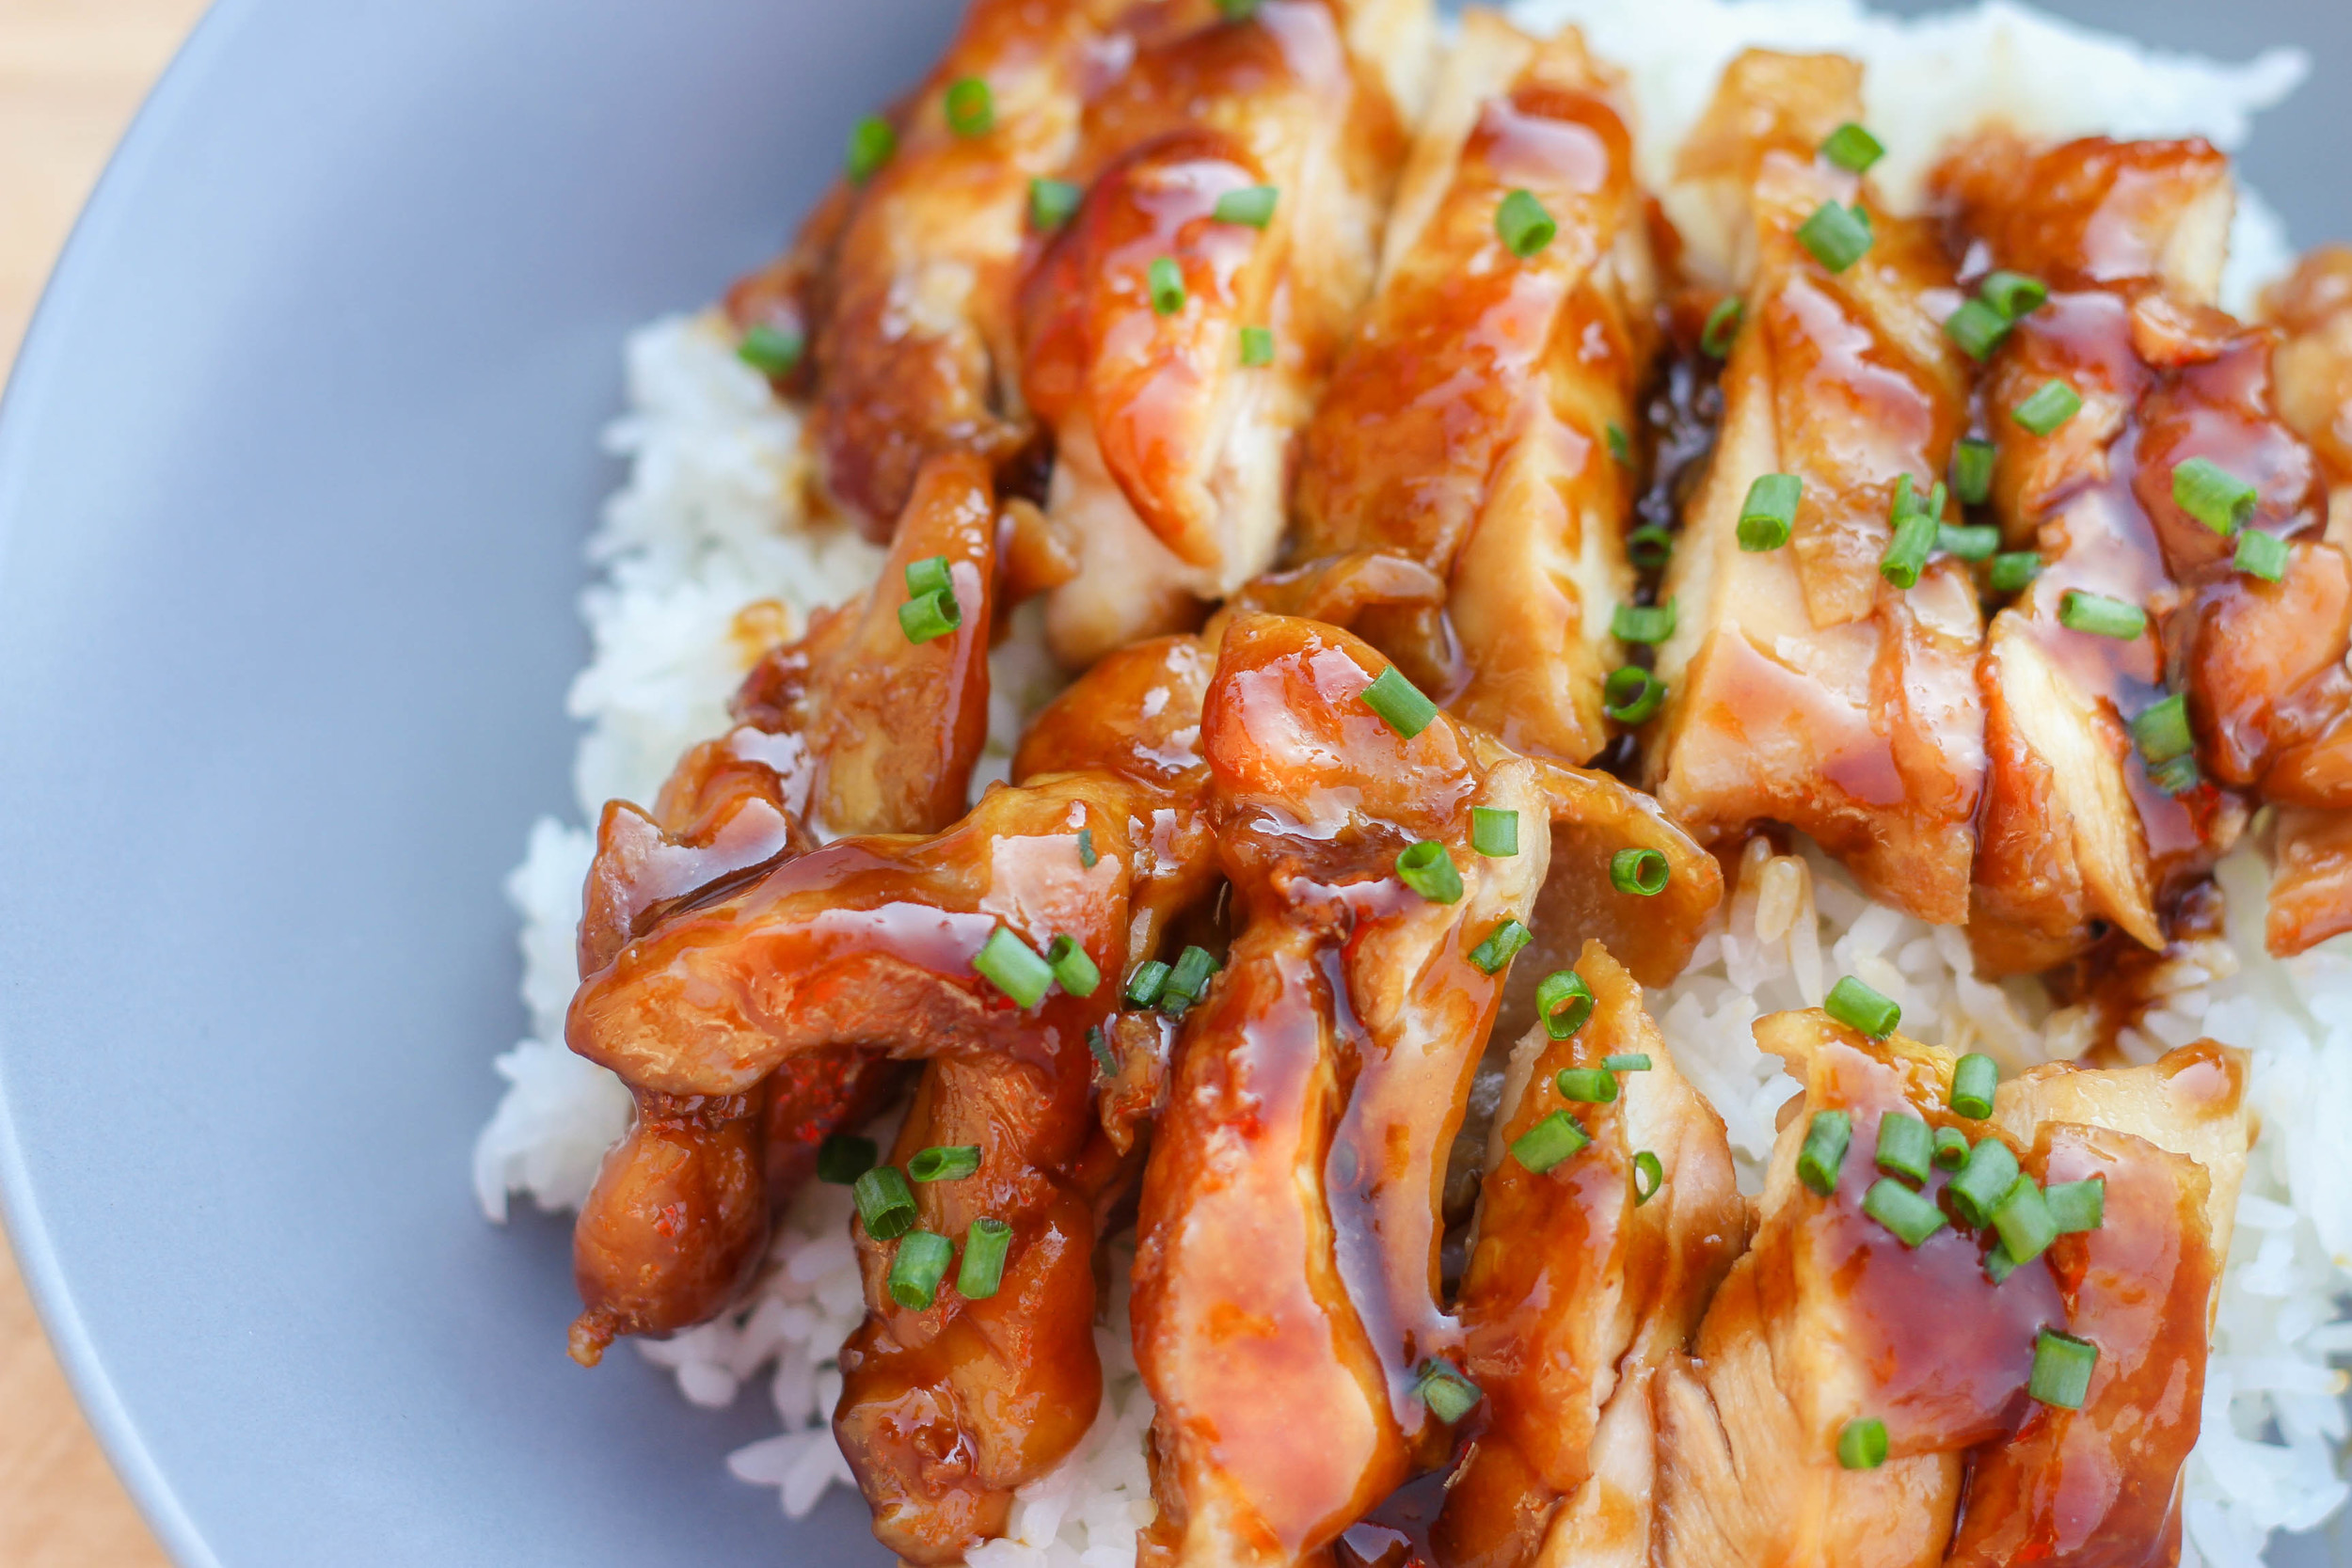 Chicken teriyaki over steamed white rice